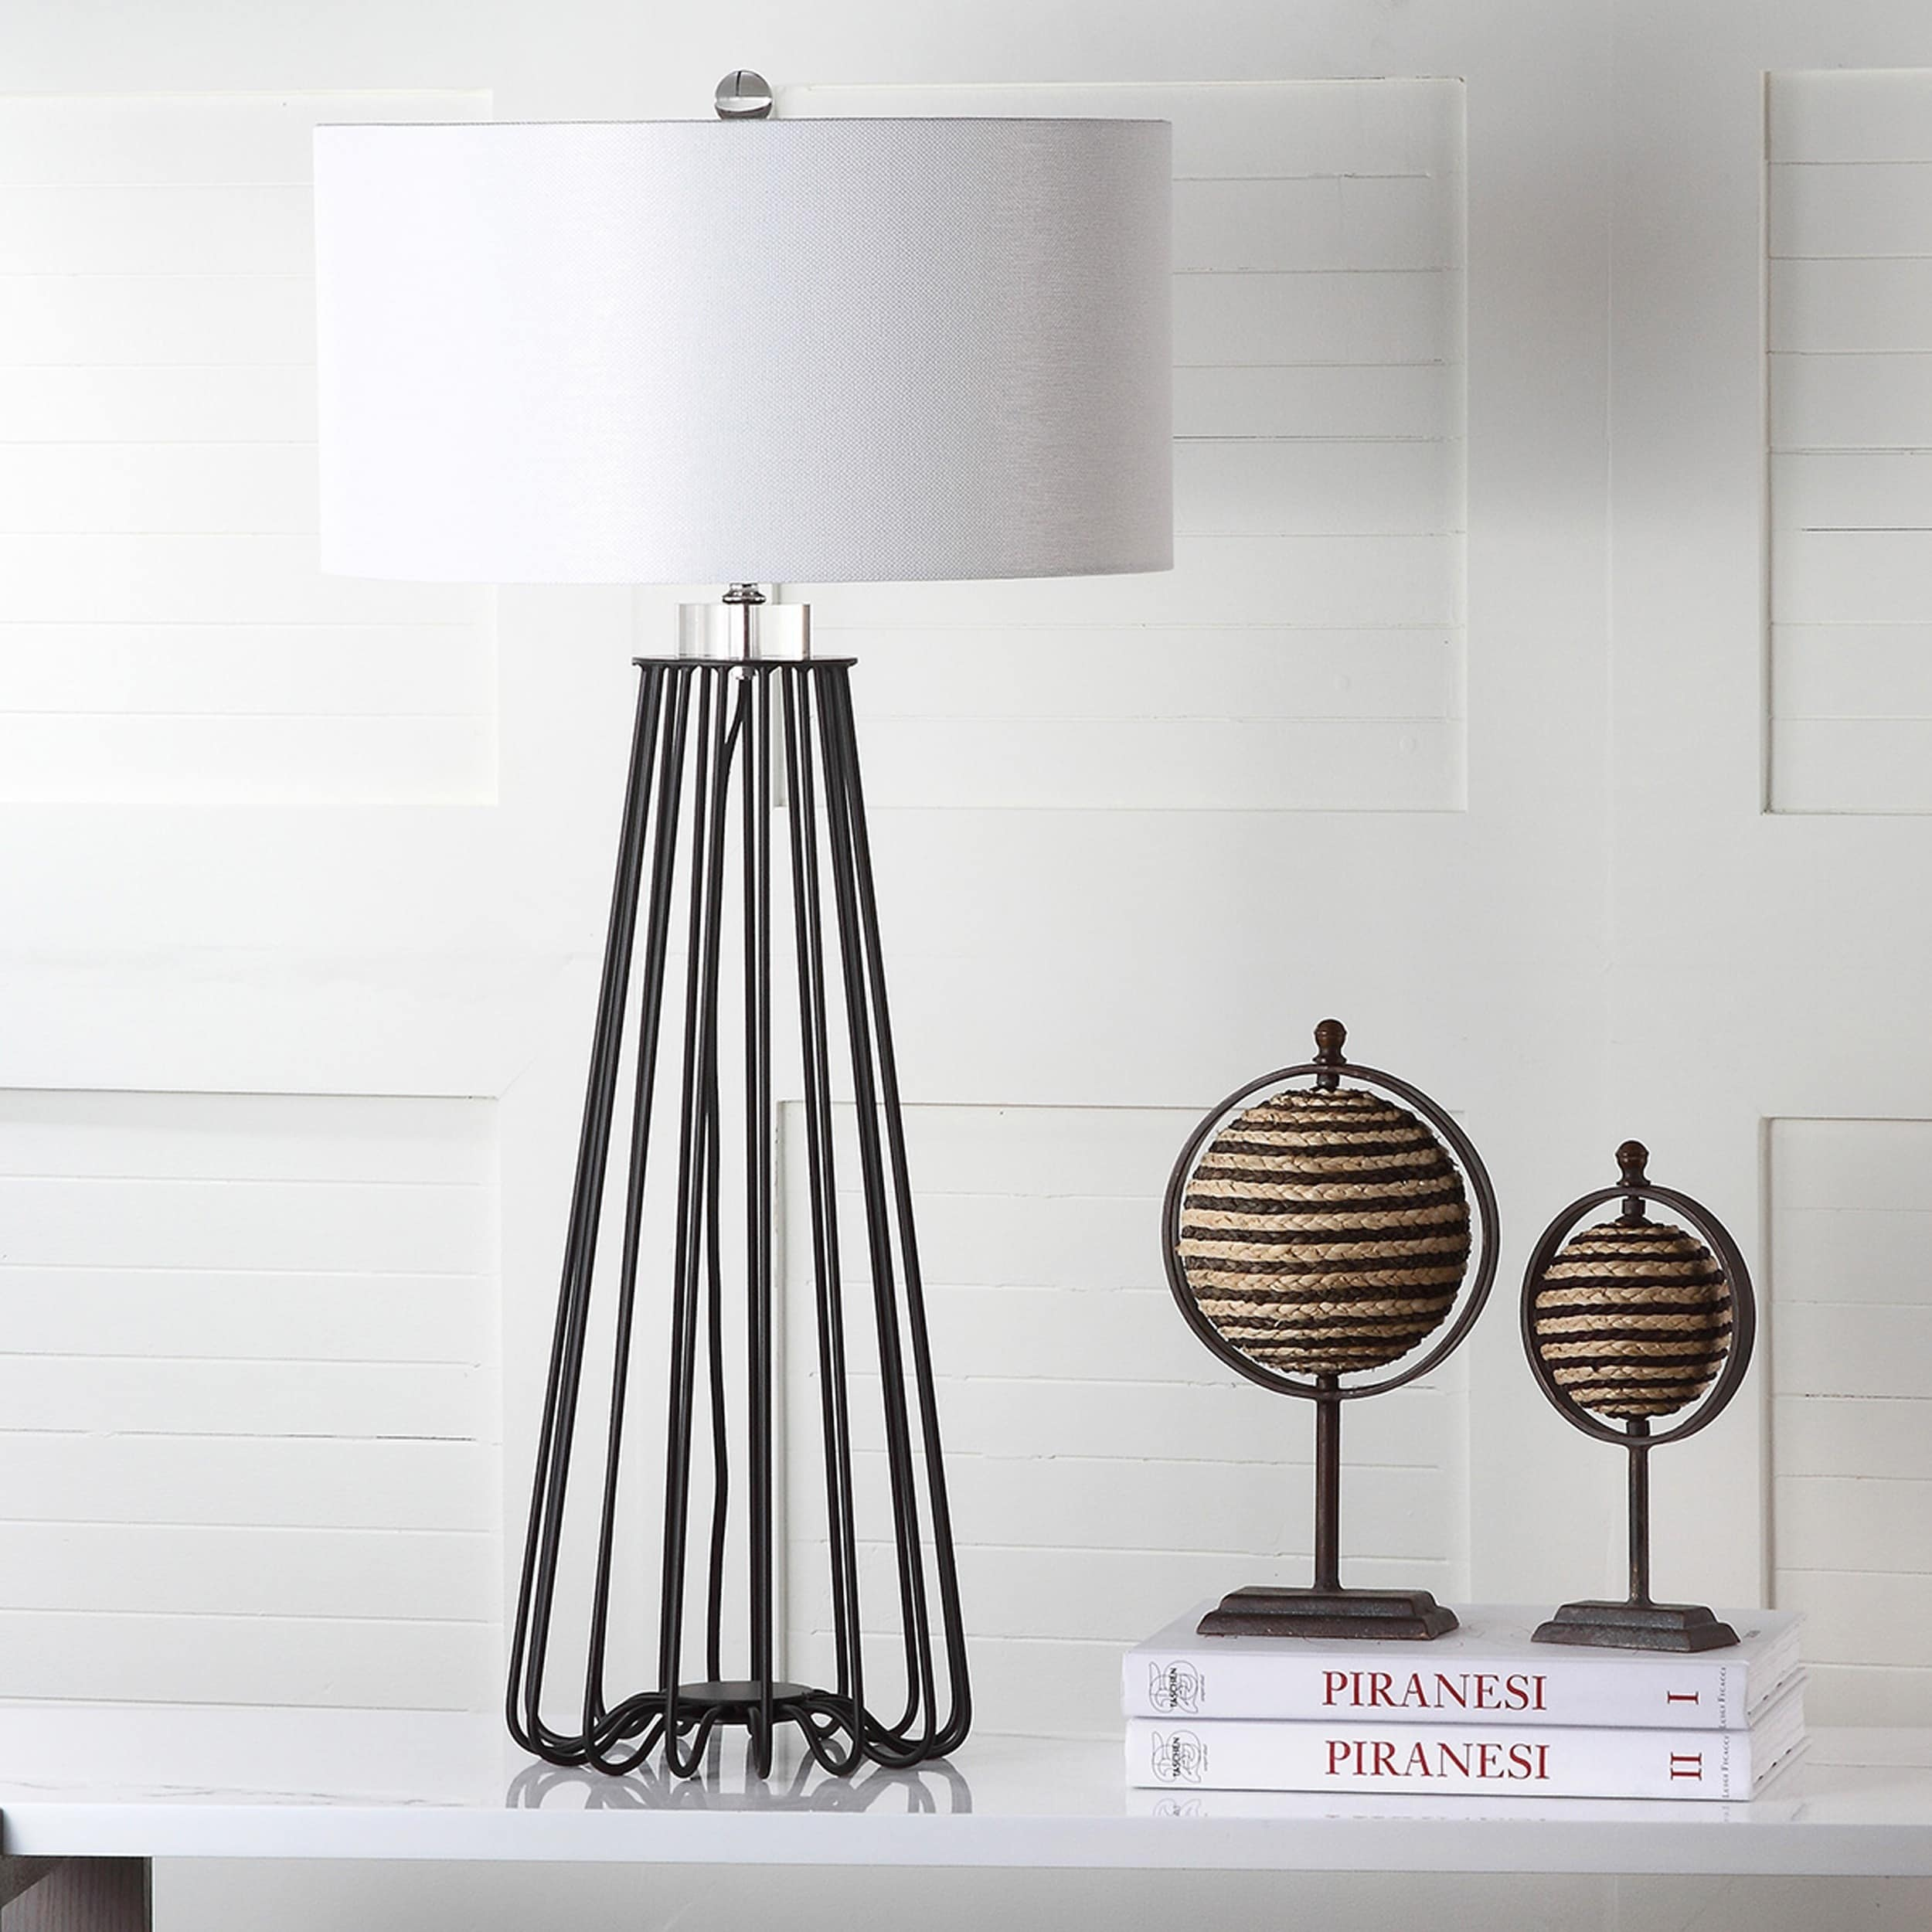 Black Metal Table Lamp - I love the contrast of black and white in this lamp. It looks like a timeless piece because black and white are the classics! I also love how tall this lamp is because sometimes you need something a little more substantial on your desk or table. This comes in a set of two and is currently on sale! Snag it HERE if you like it!